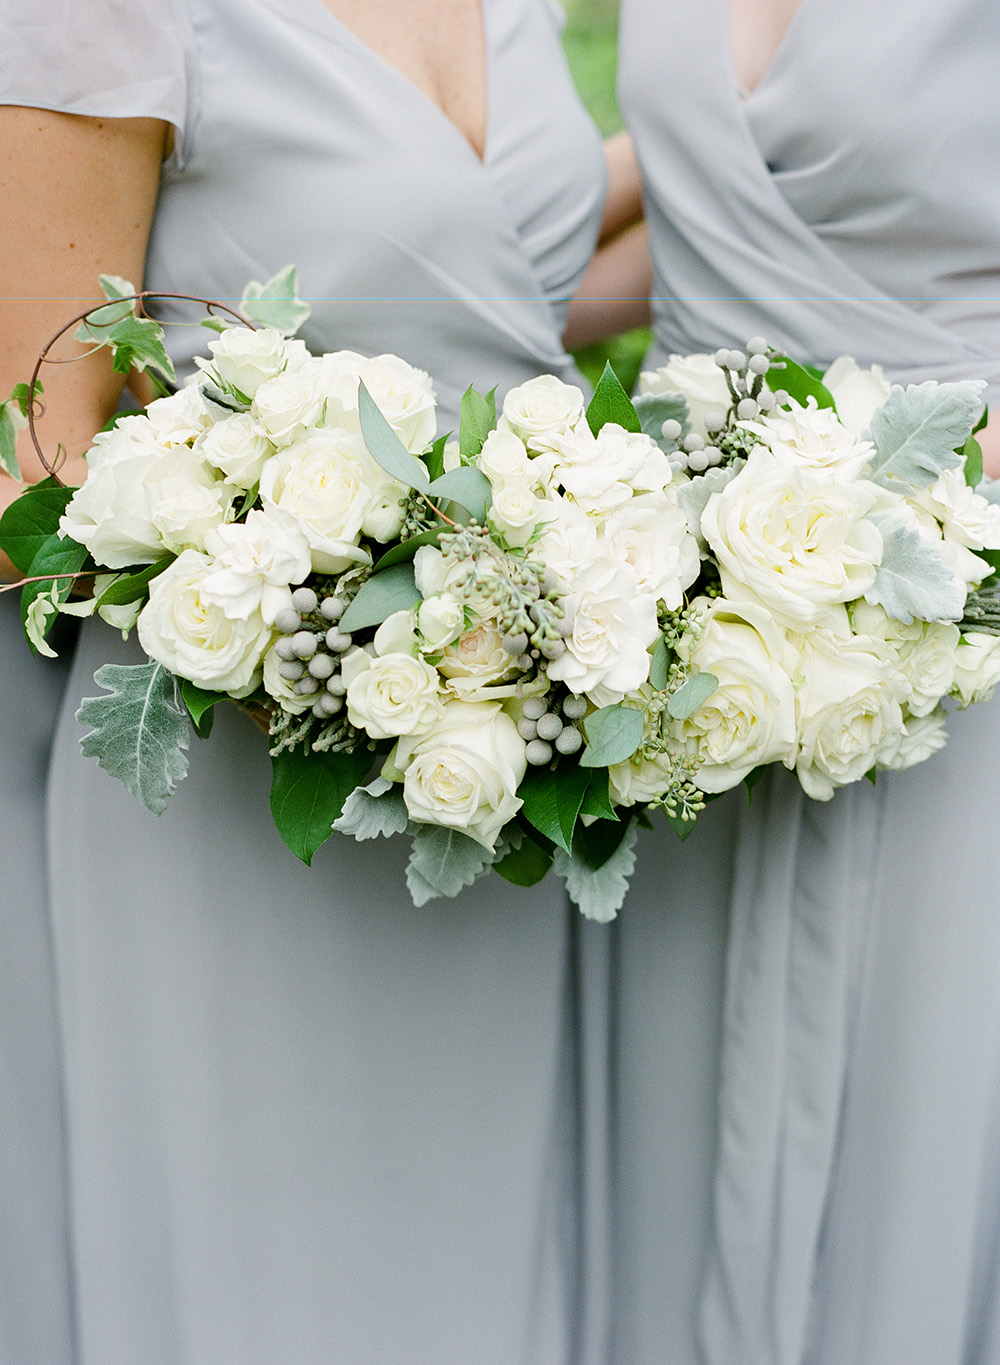 bouquet, houstonian, reception, flowers, grayhouse events, swift + co, floral, bridesmaids, dresses